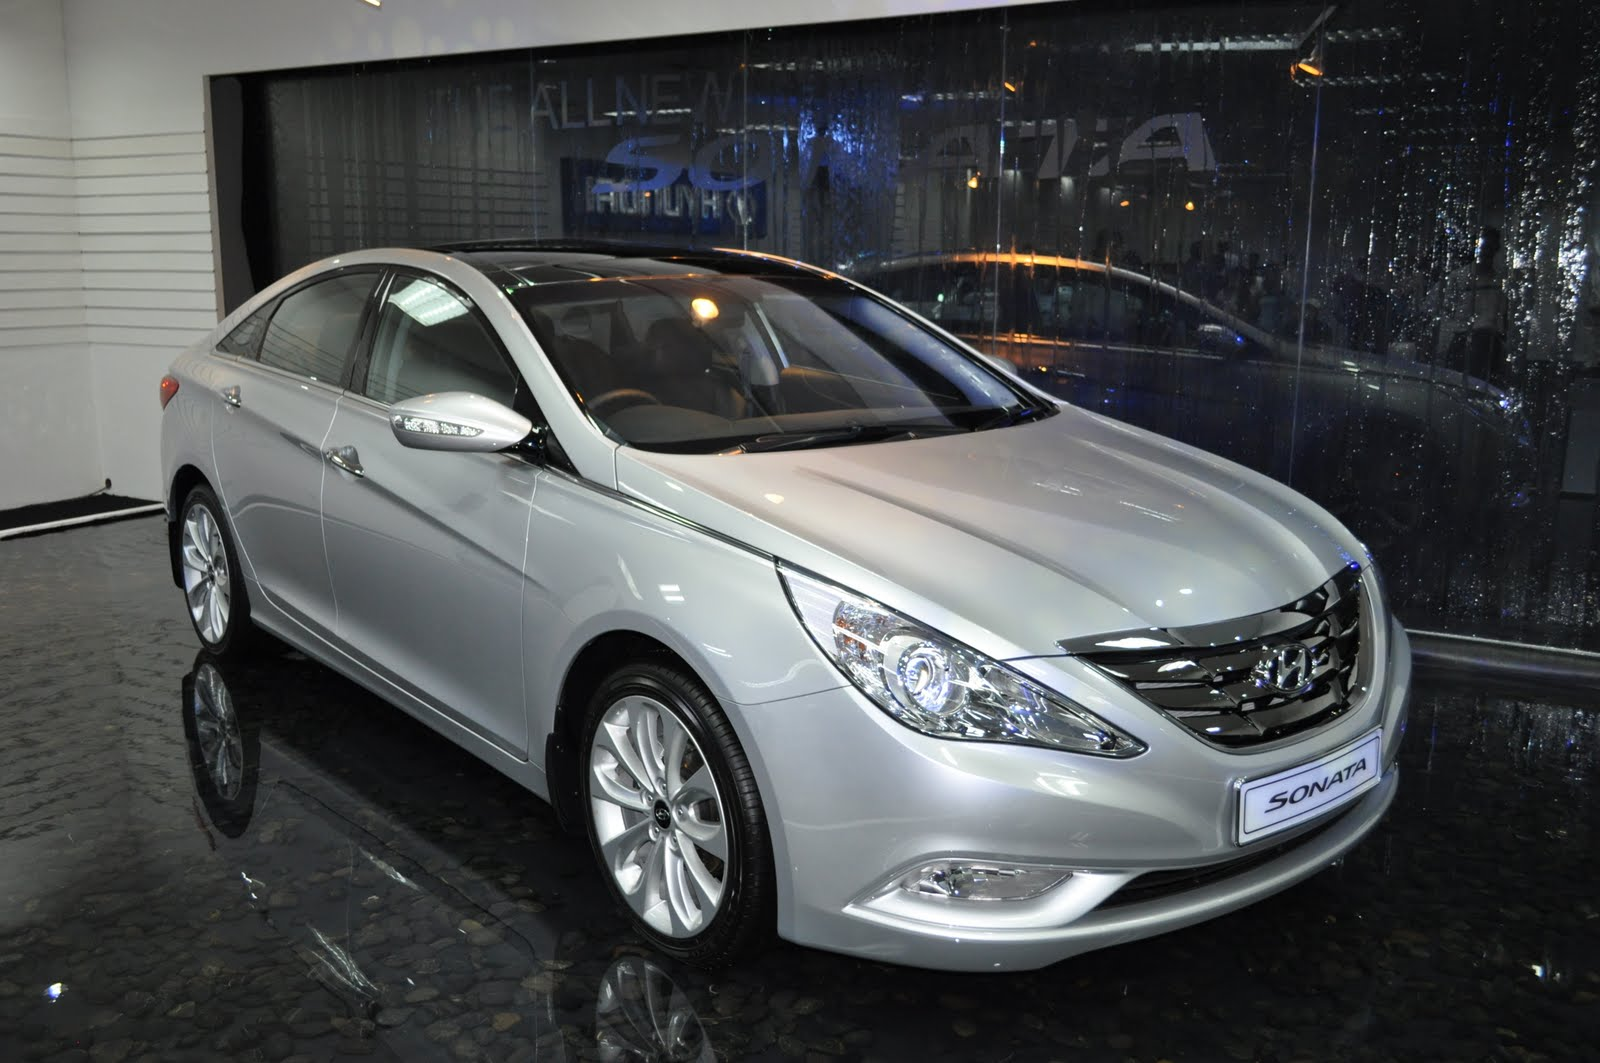 Brief Test Drive Review Of The New Hyundai Sonata YF, The Koreanu0027s Are  Coming!!